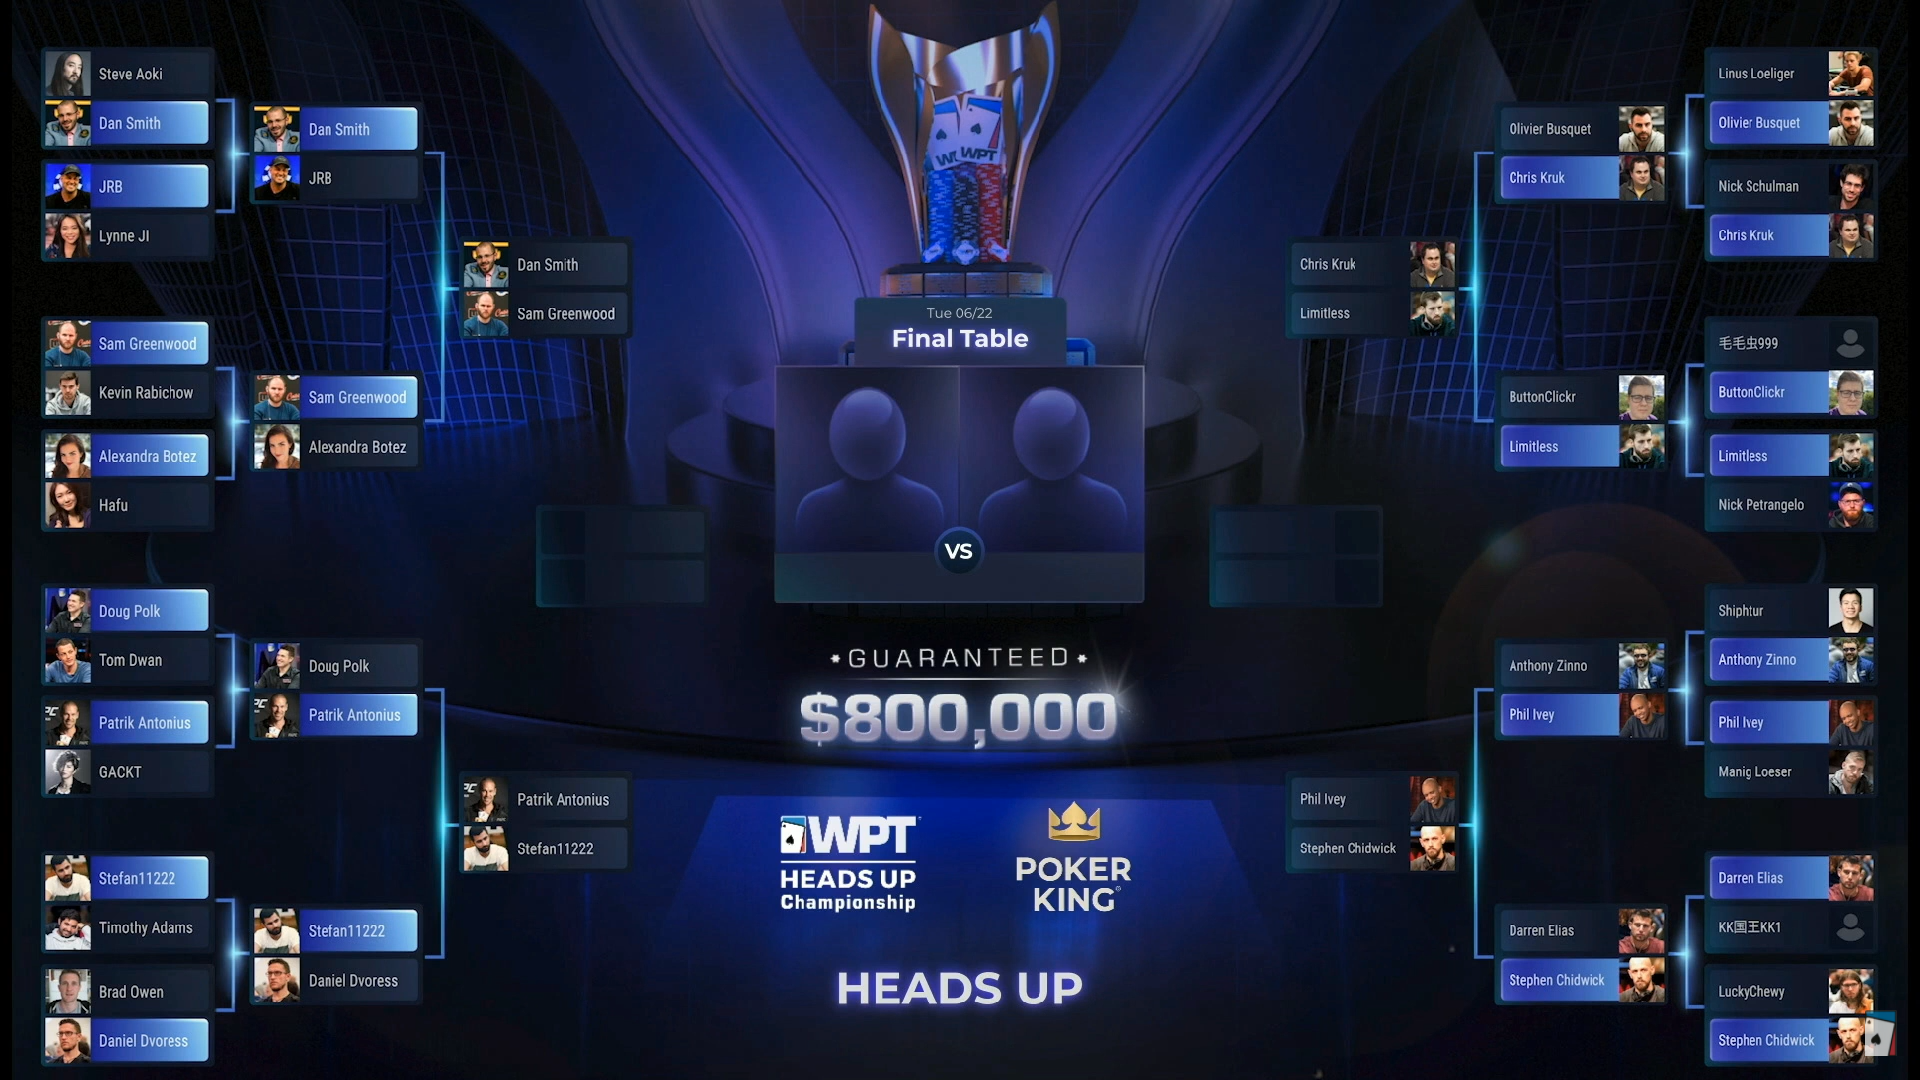 WPT Heads Up Championship